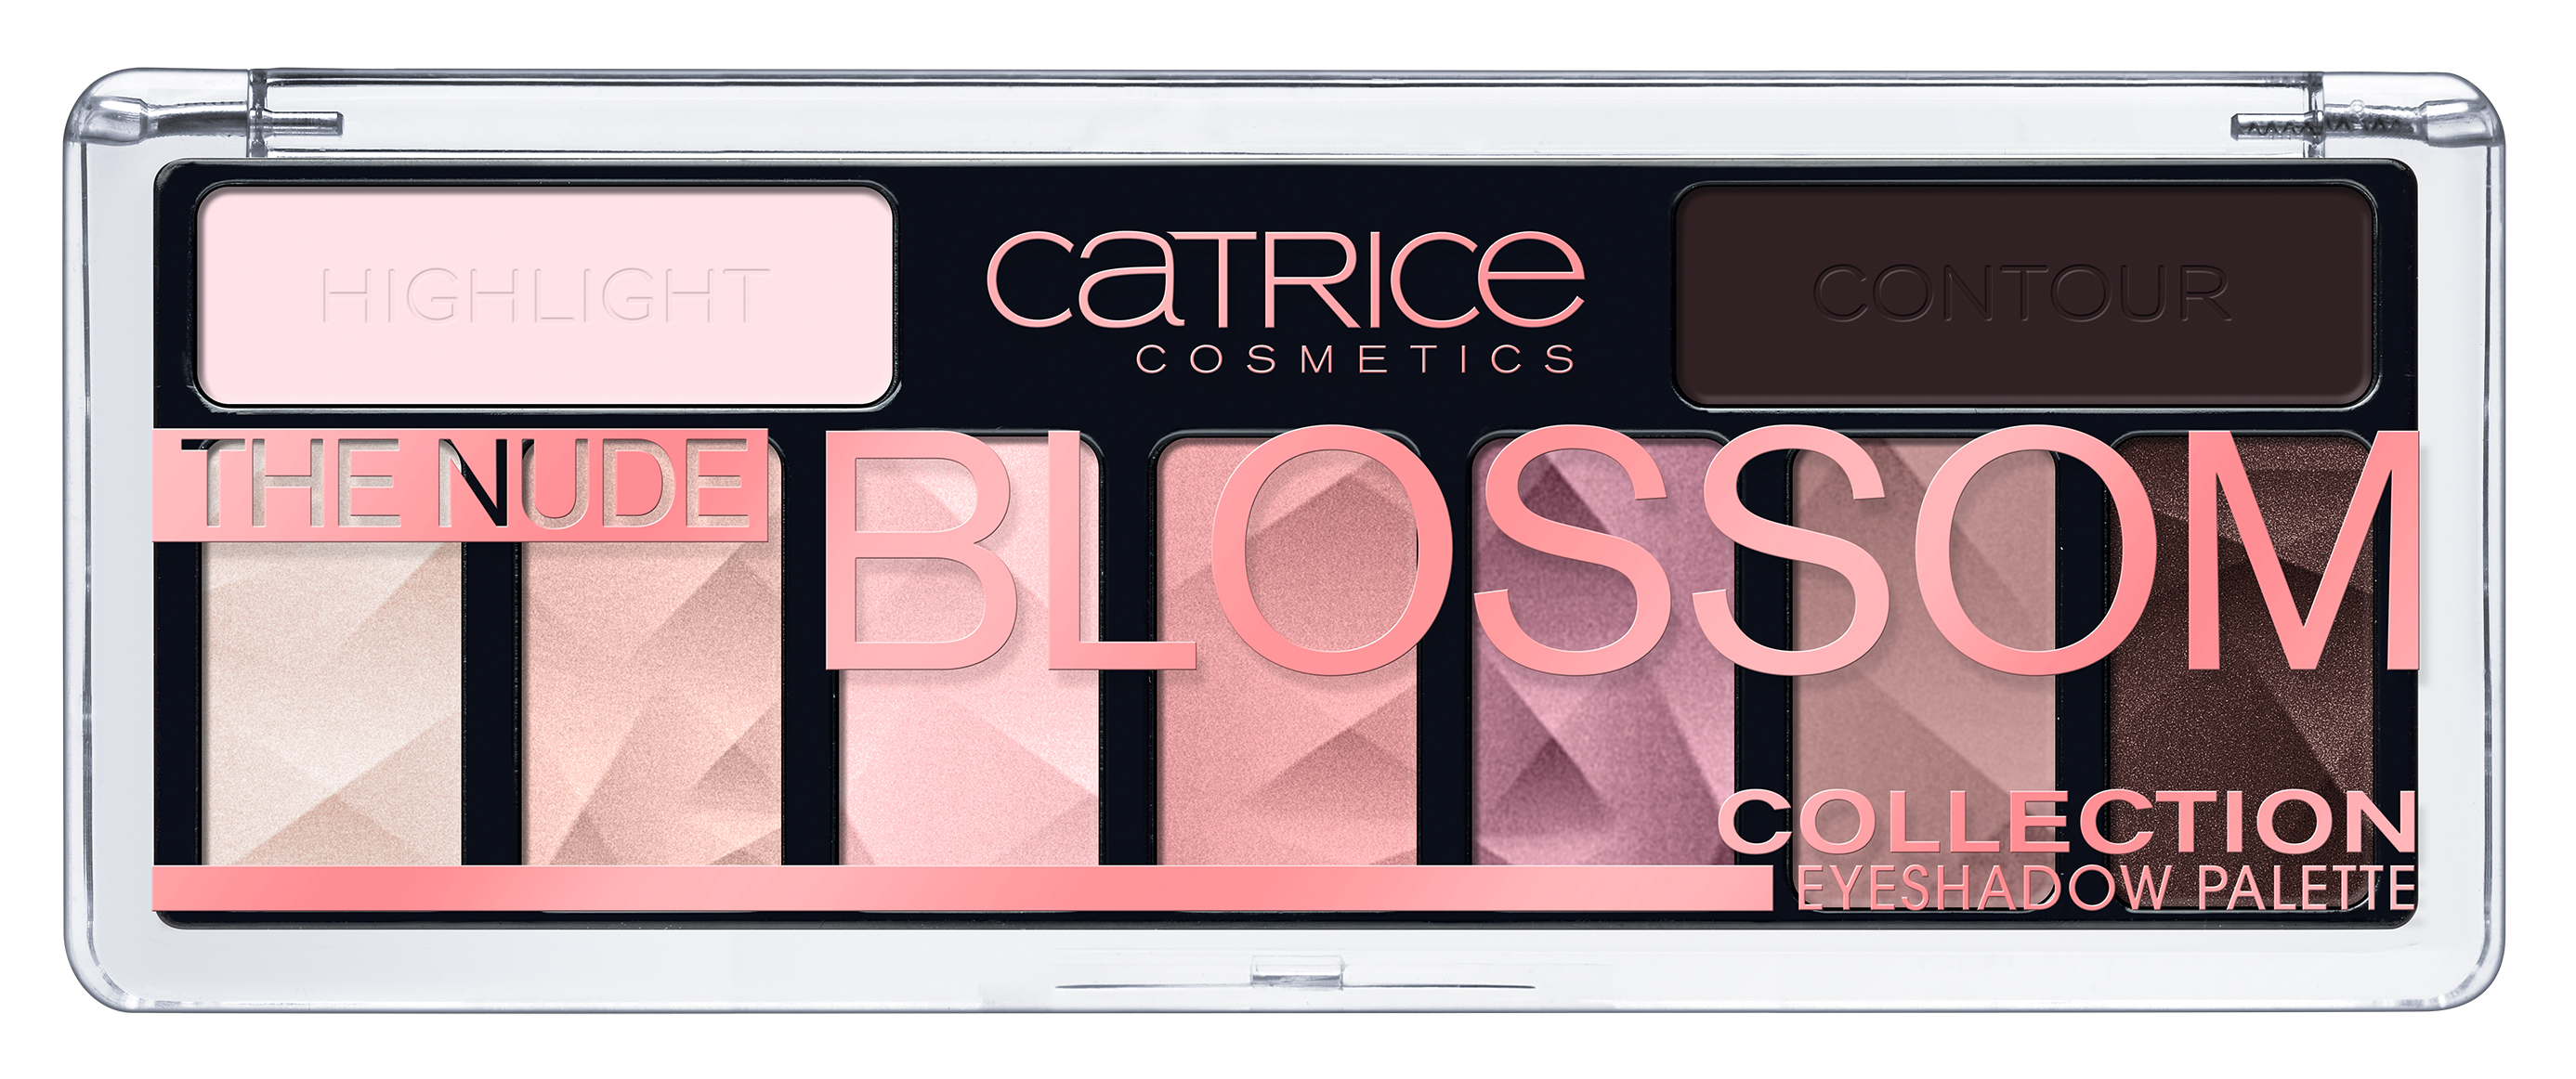 coca55-03b-it-pieces-by-catrice-the-nude-blossom-collection-eyeshadow-palette-010-blossom-n-roses